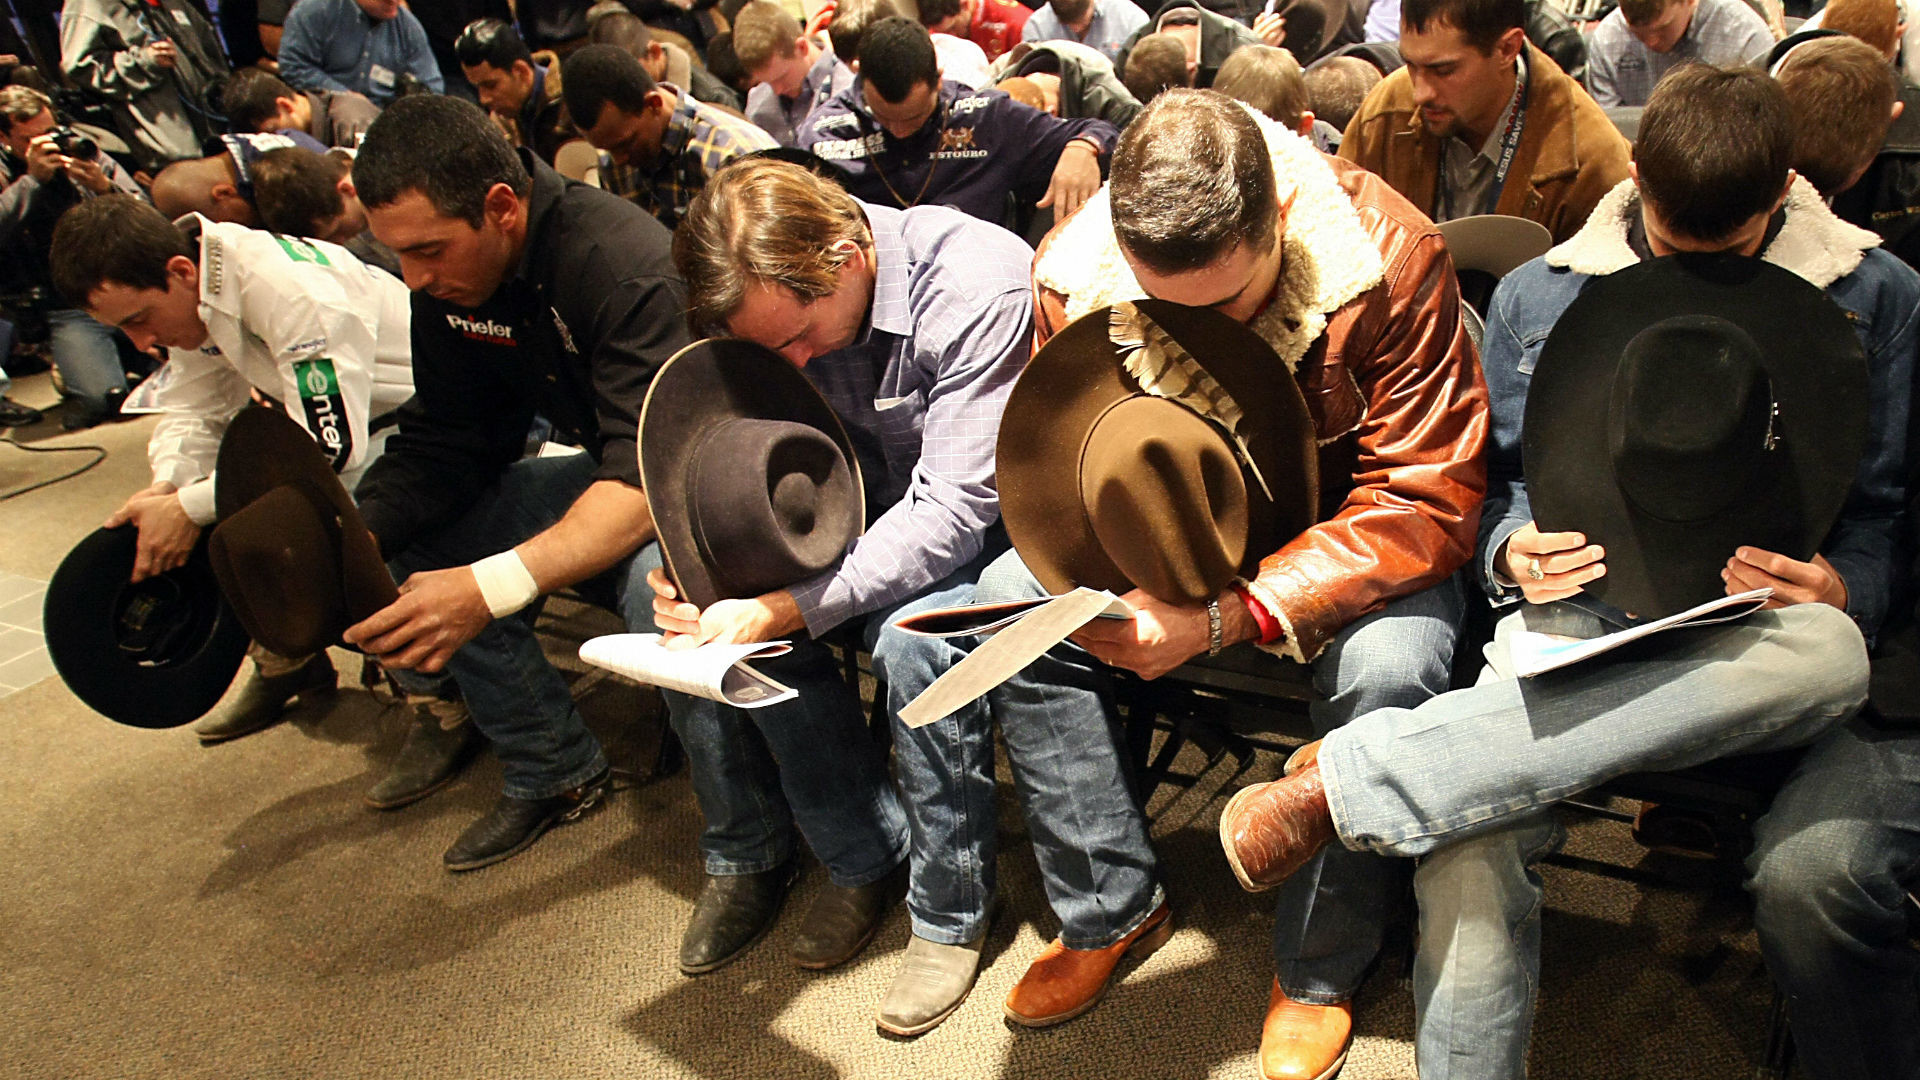 1920x1080 PBR cowboys pray before an event. (Getty)